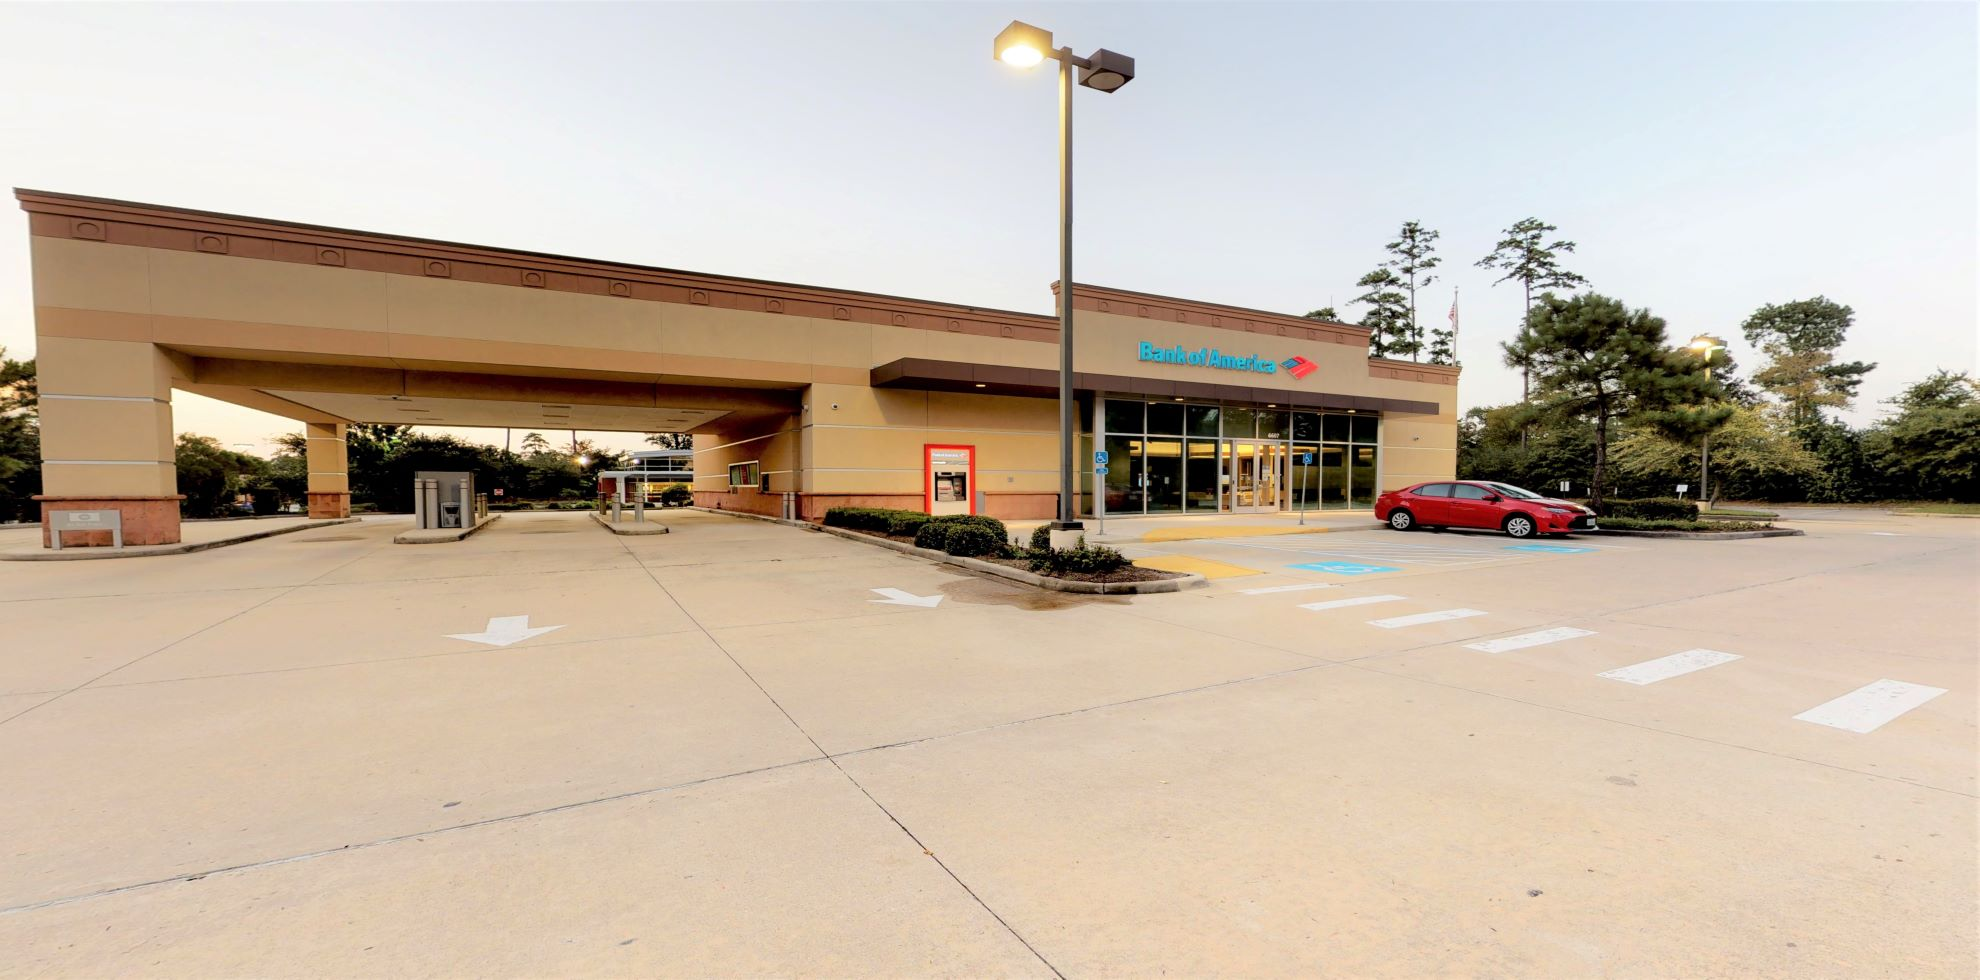 Bank of America financial center with drive-thru ATM   6607 Woodlands Pkwy, The Woodlands, TX 77382